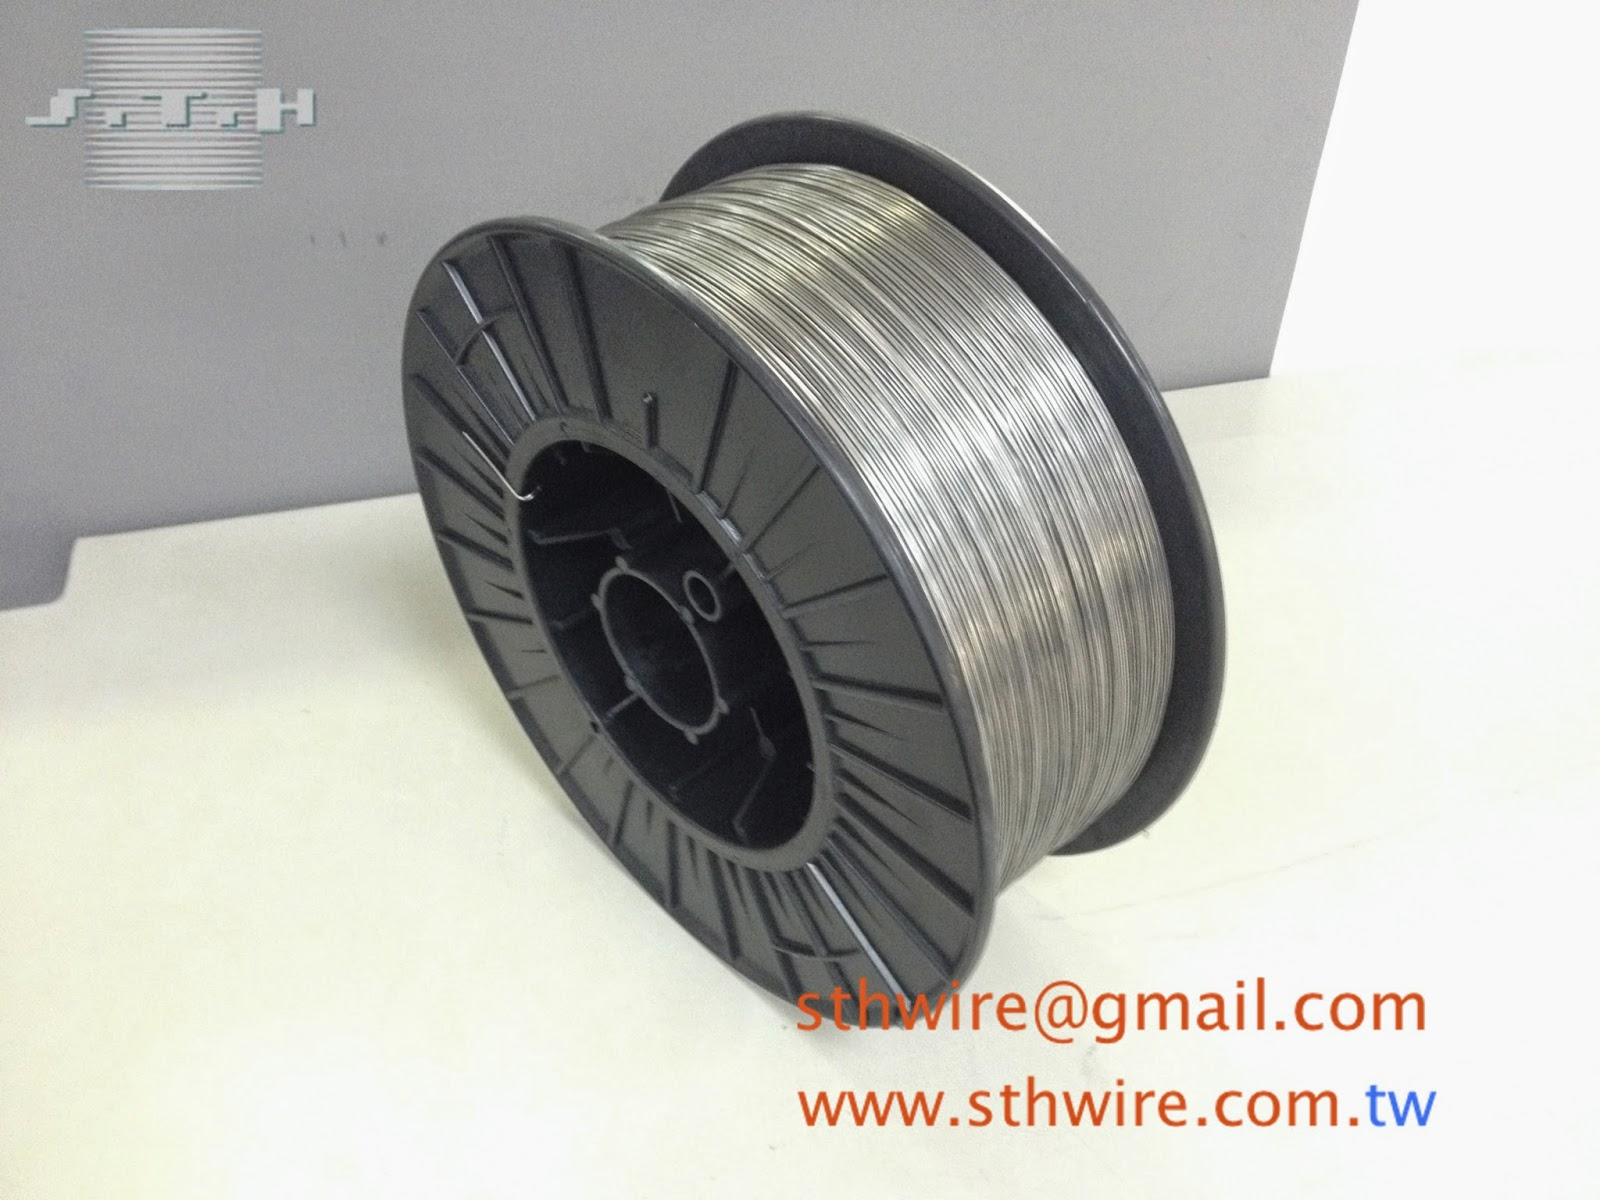 STH - Stitching wire and Baling wire specialist: 2014